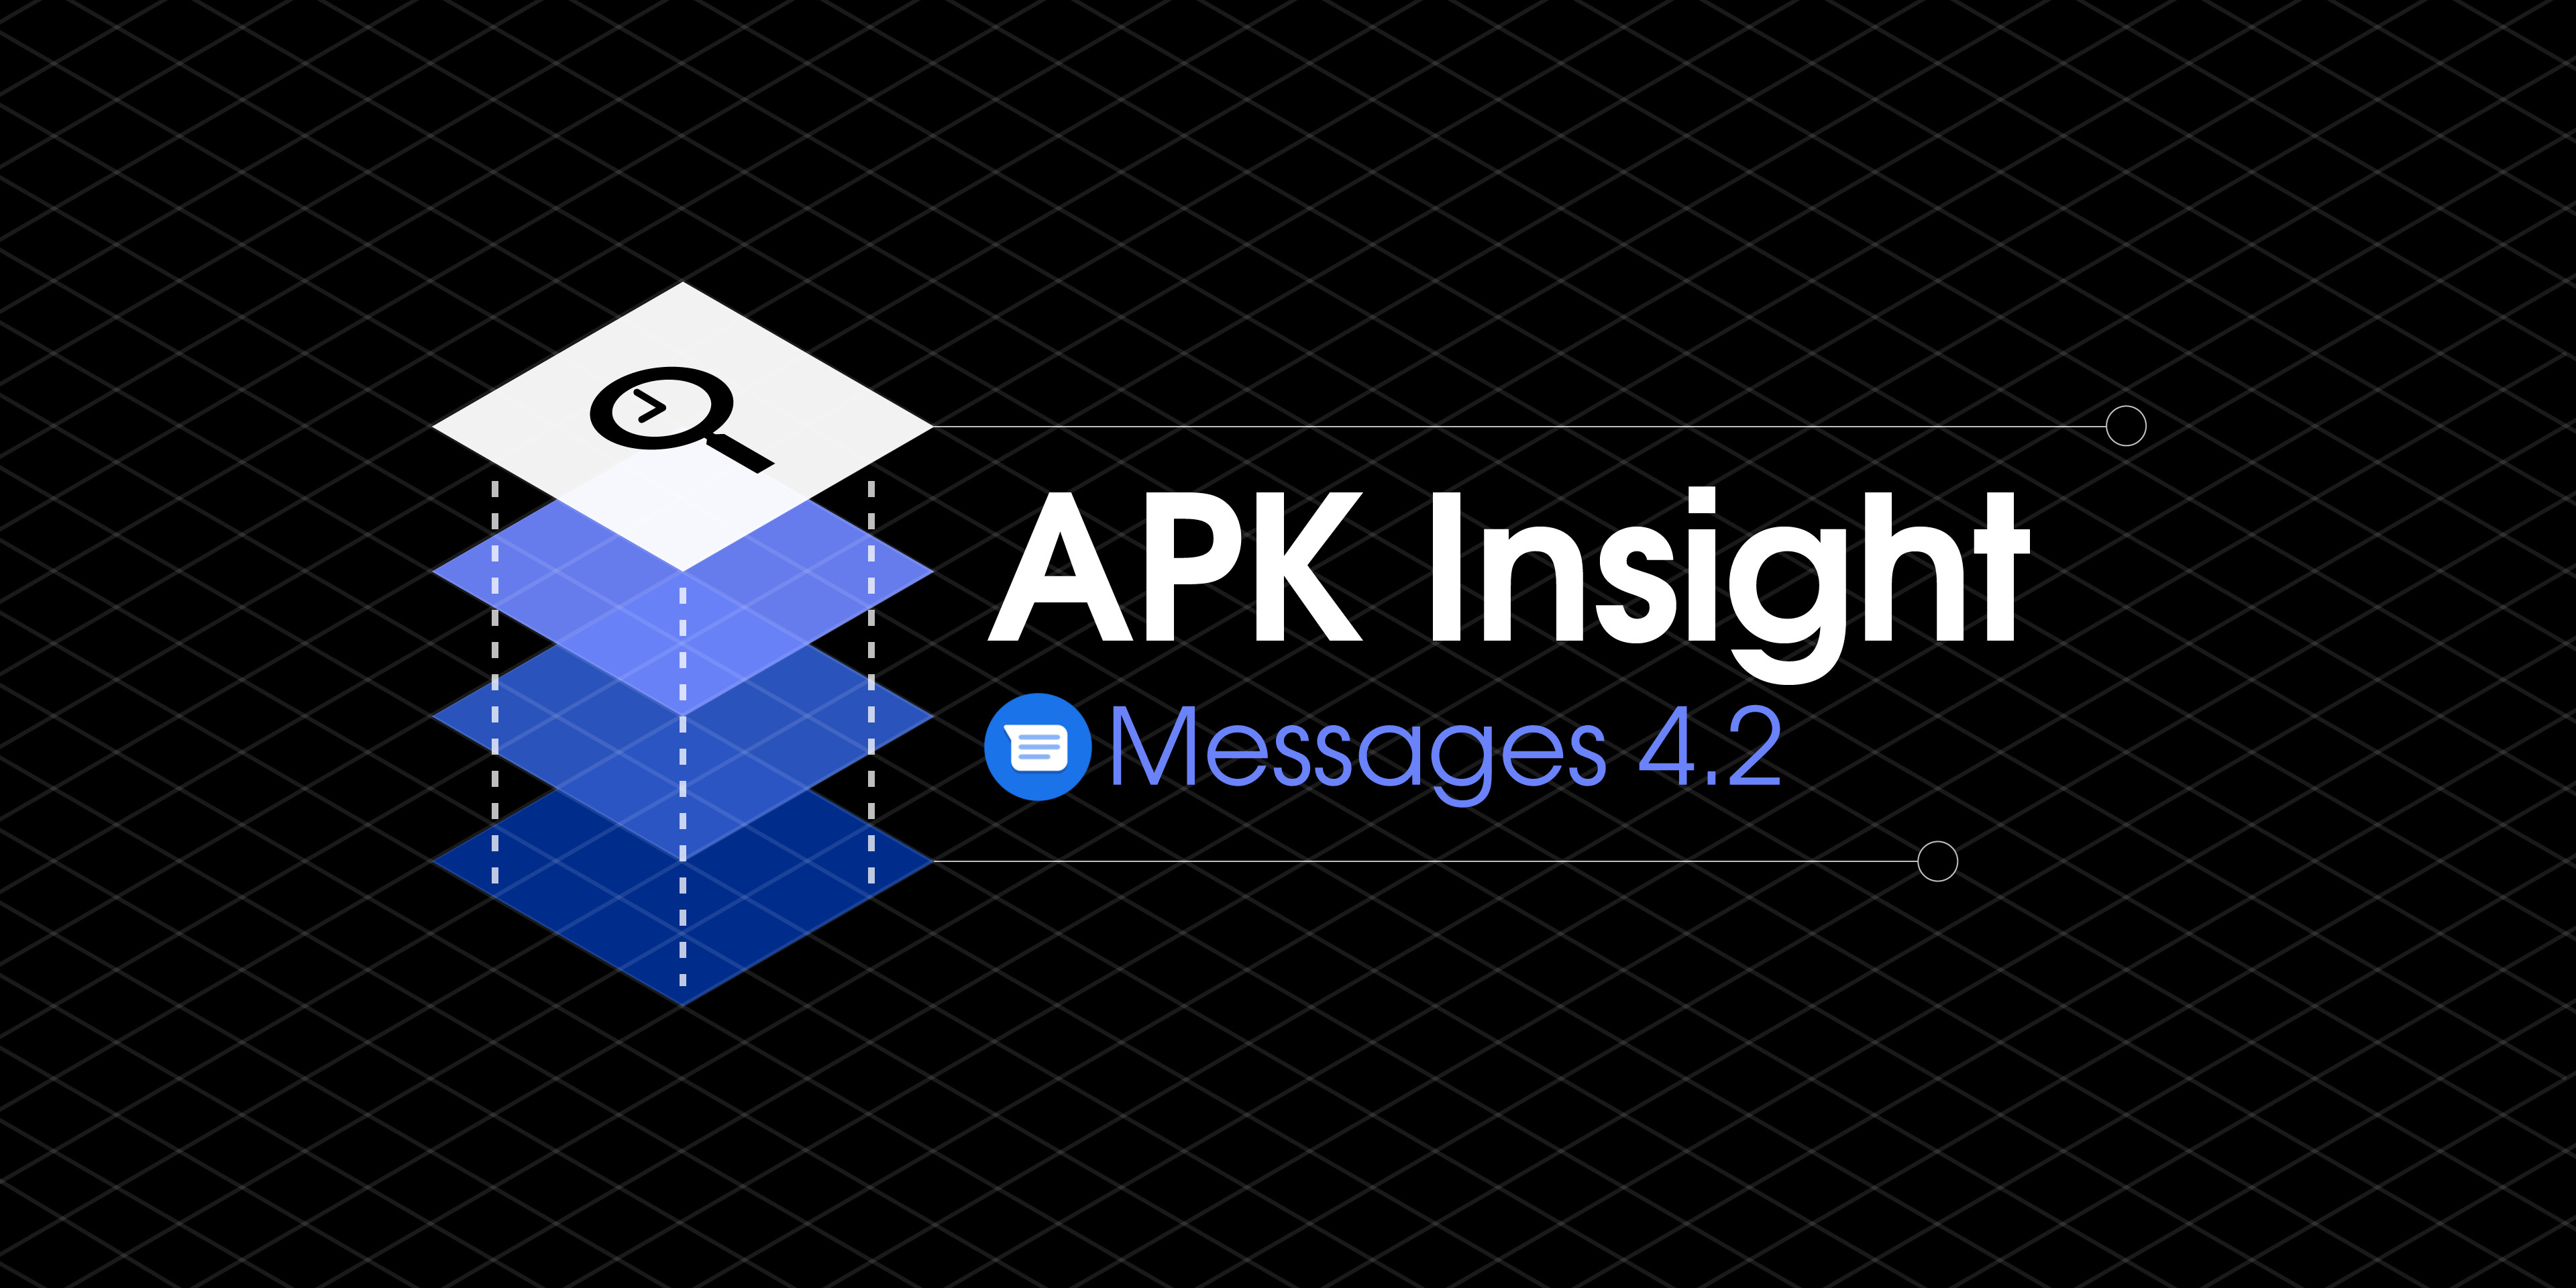 Messages 4.2 adds file attachments, more prep for Assistant [APK Insight]